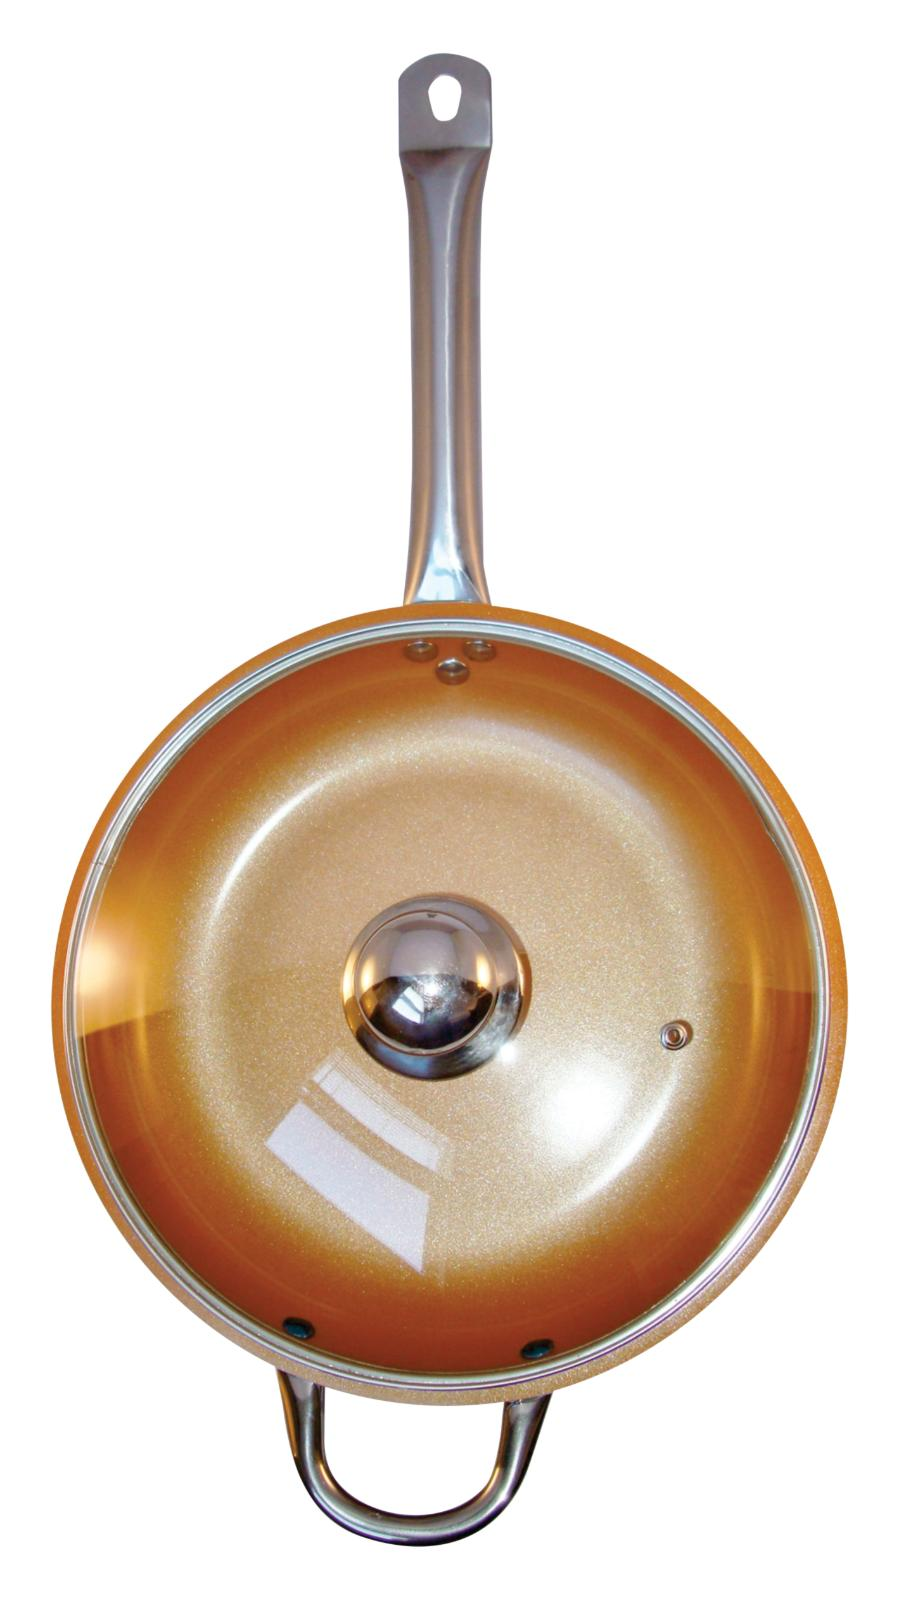 Copper Frying Pan 12 inches With Glass Lid Ceramic Infused N